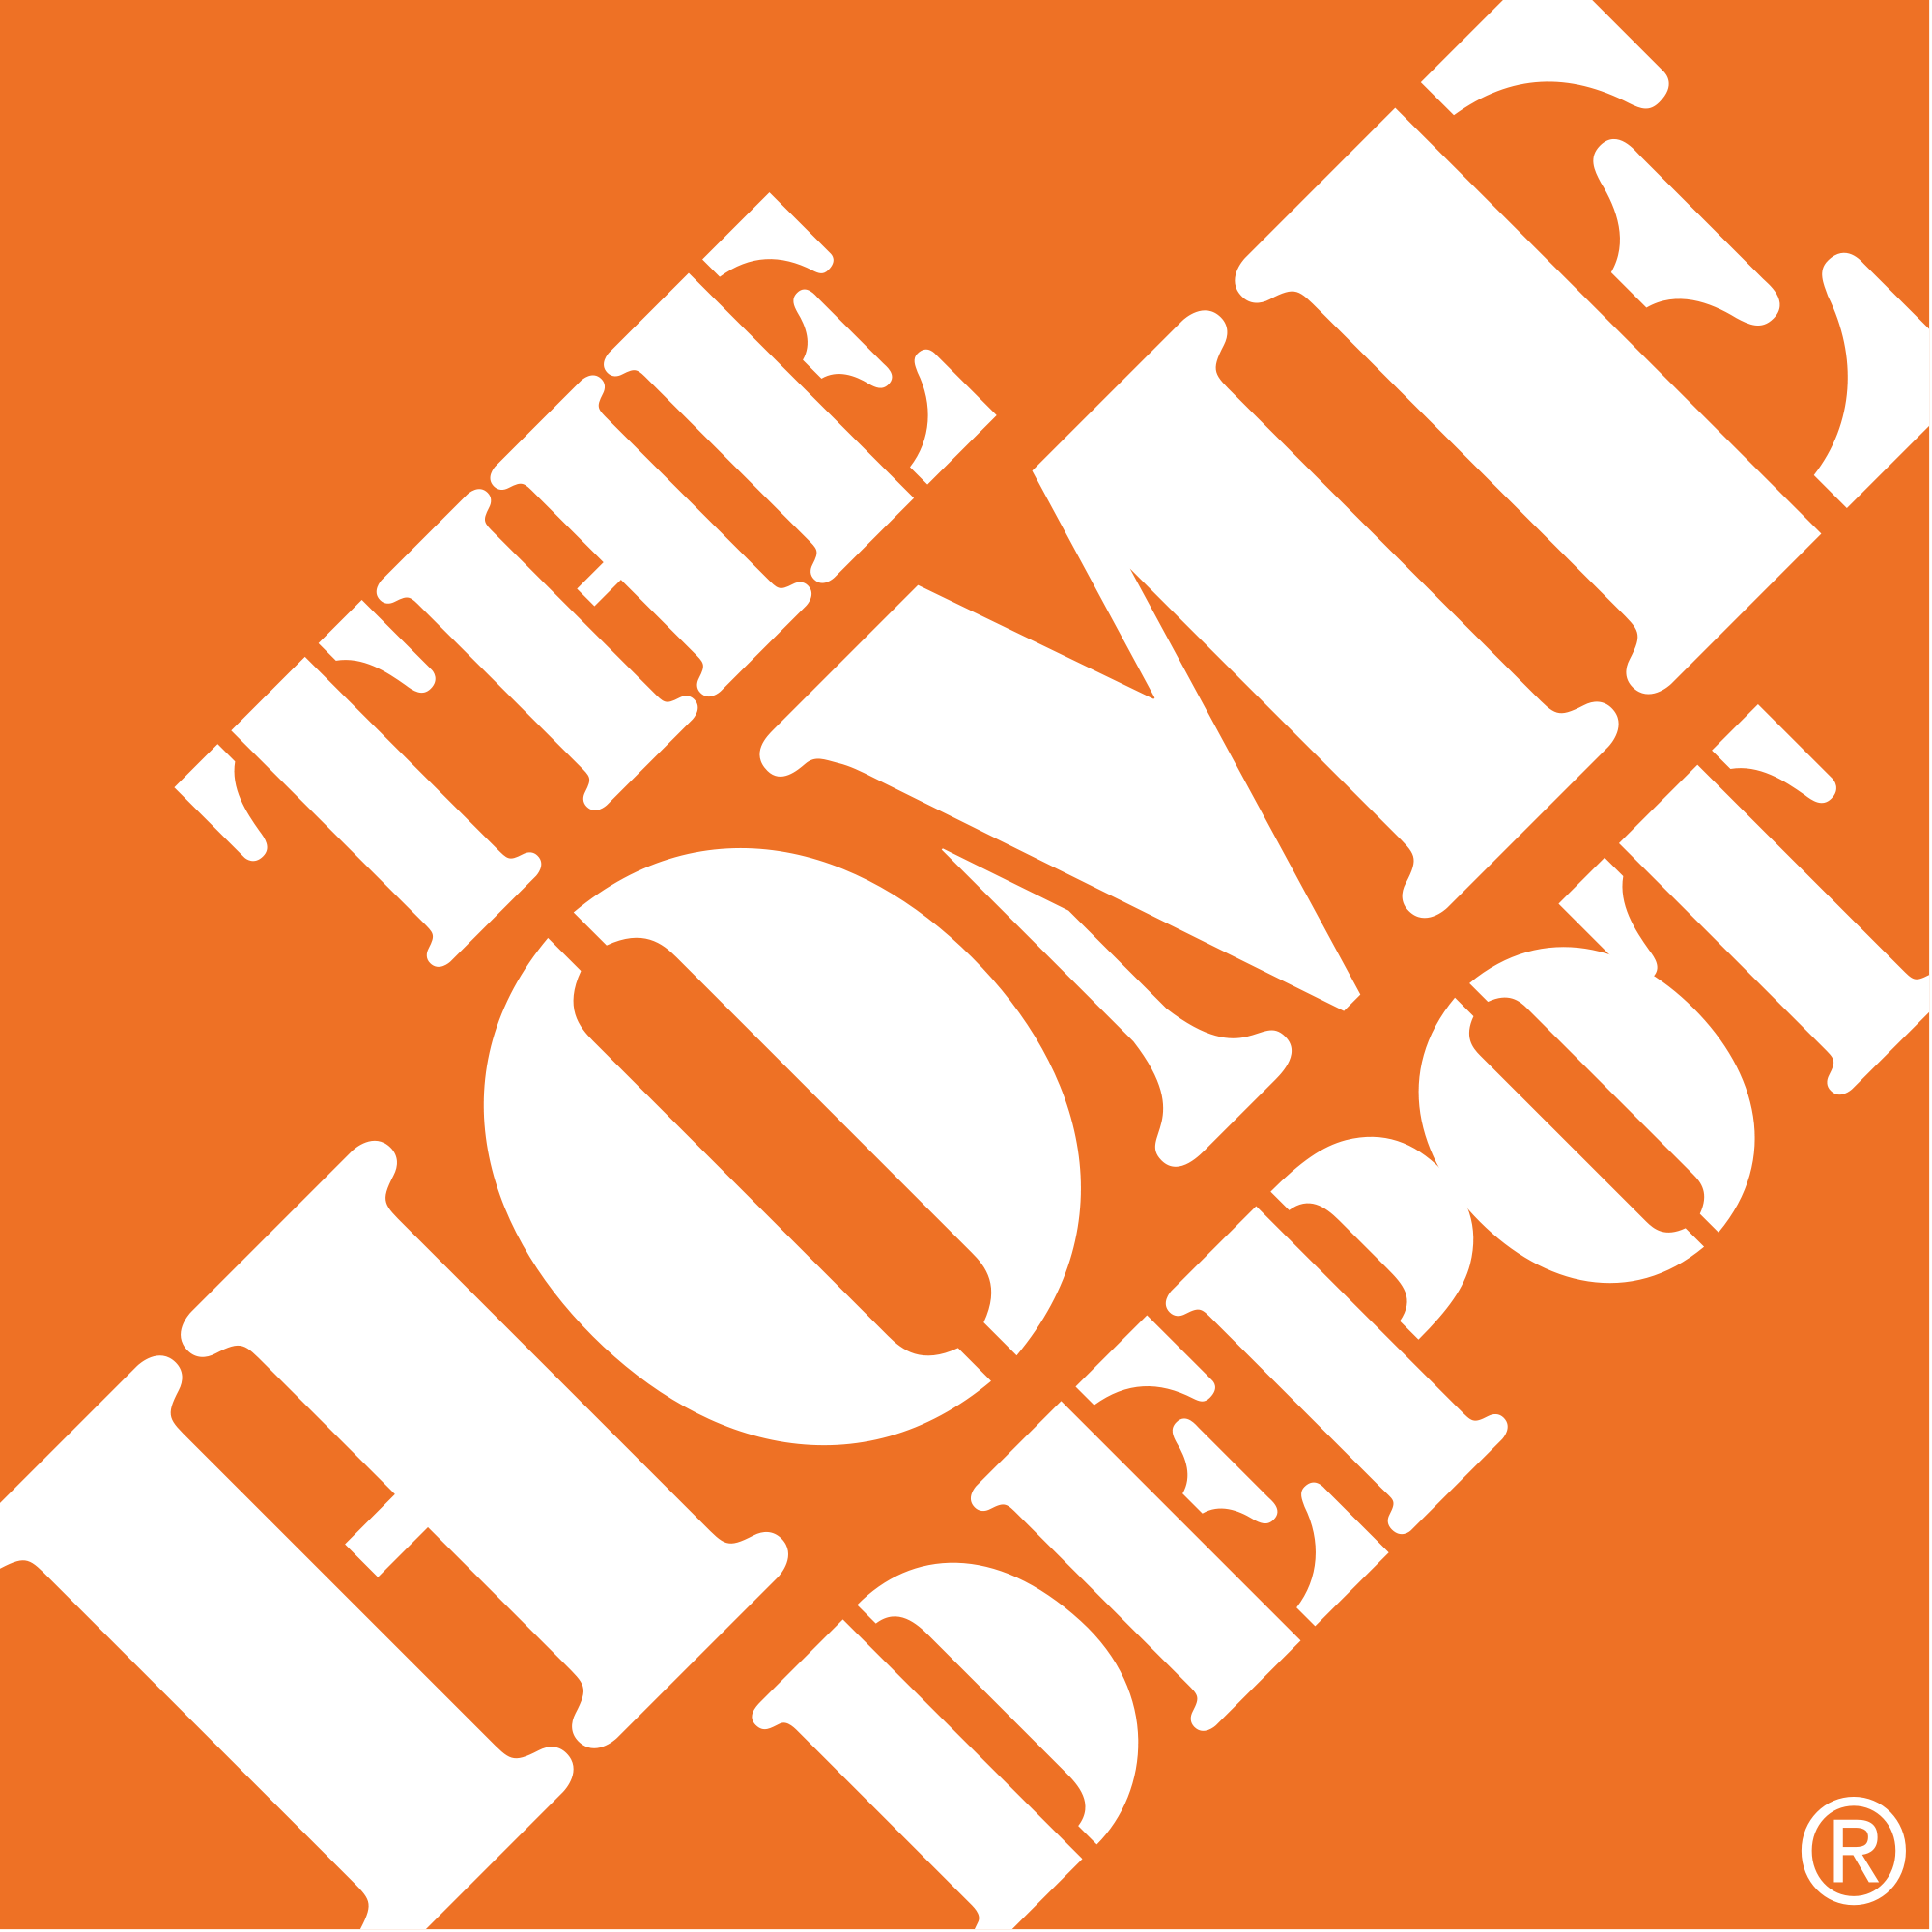 Weekly Quiz - Home Depot